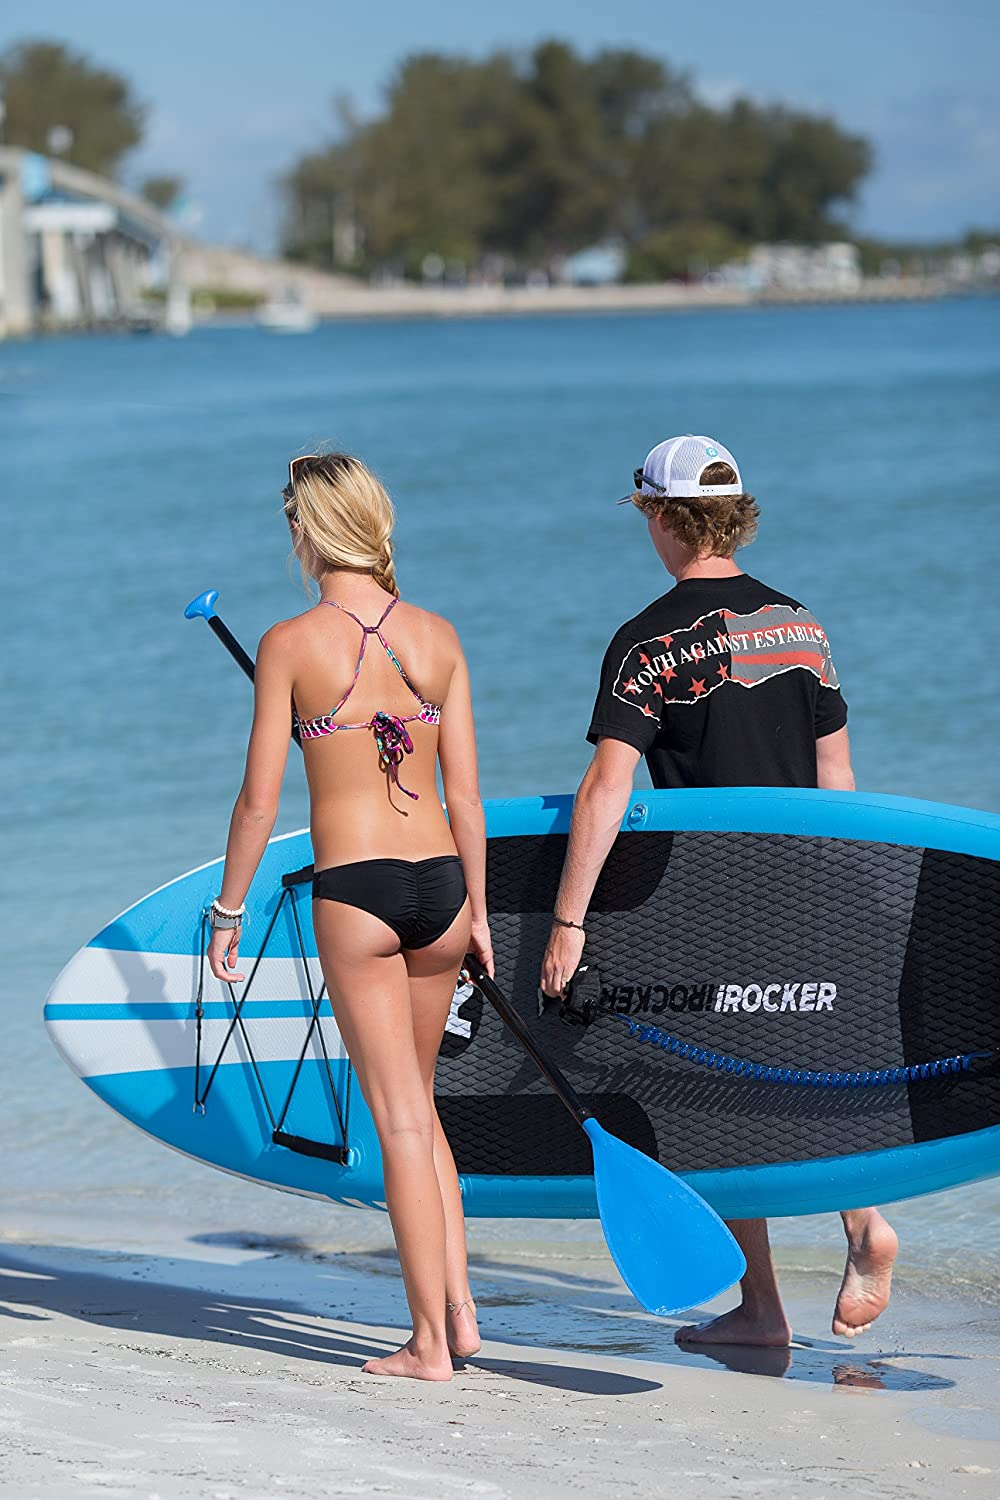 Paquete SUP de tabla de surf de remo hinchable iROCKER ALL-AROUND, 10 largo, 32